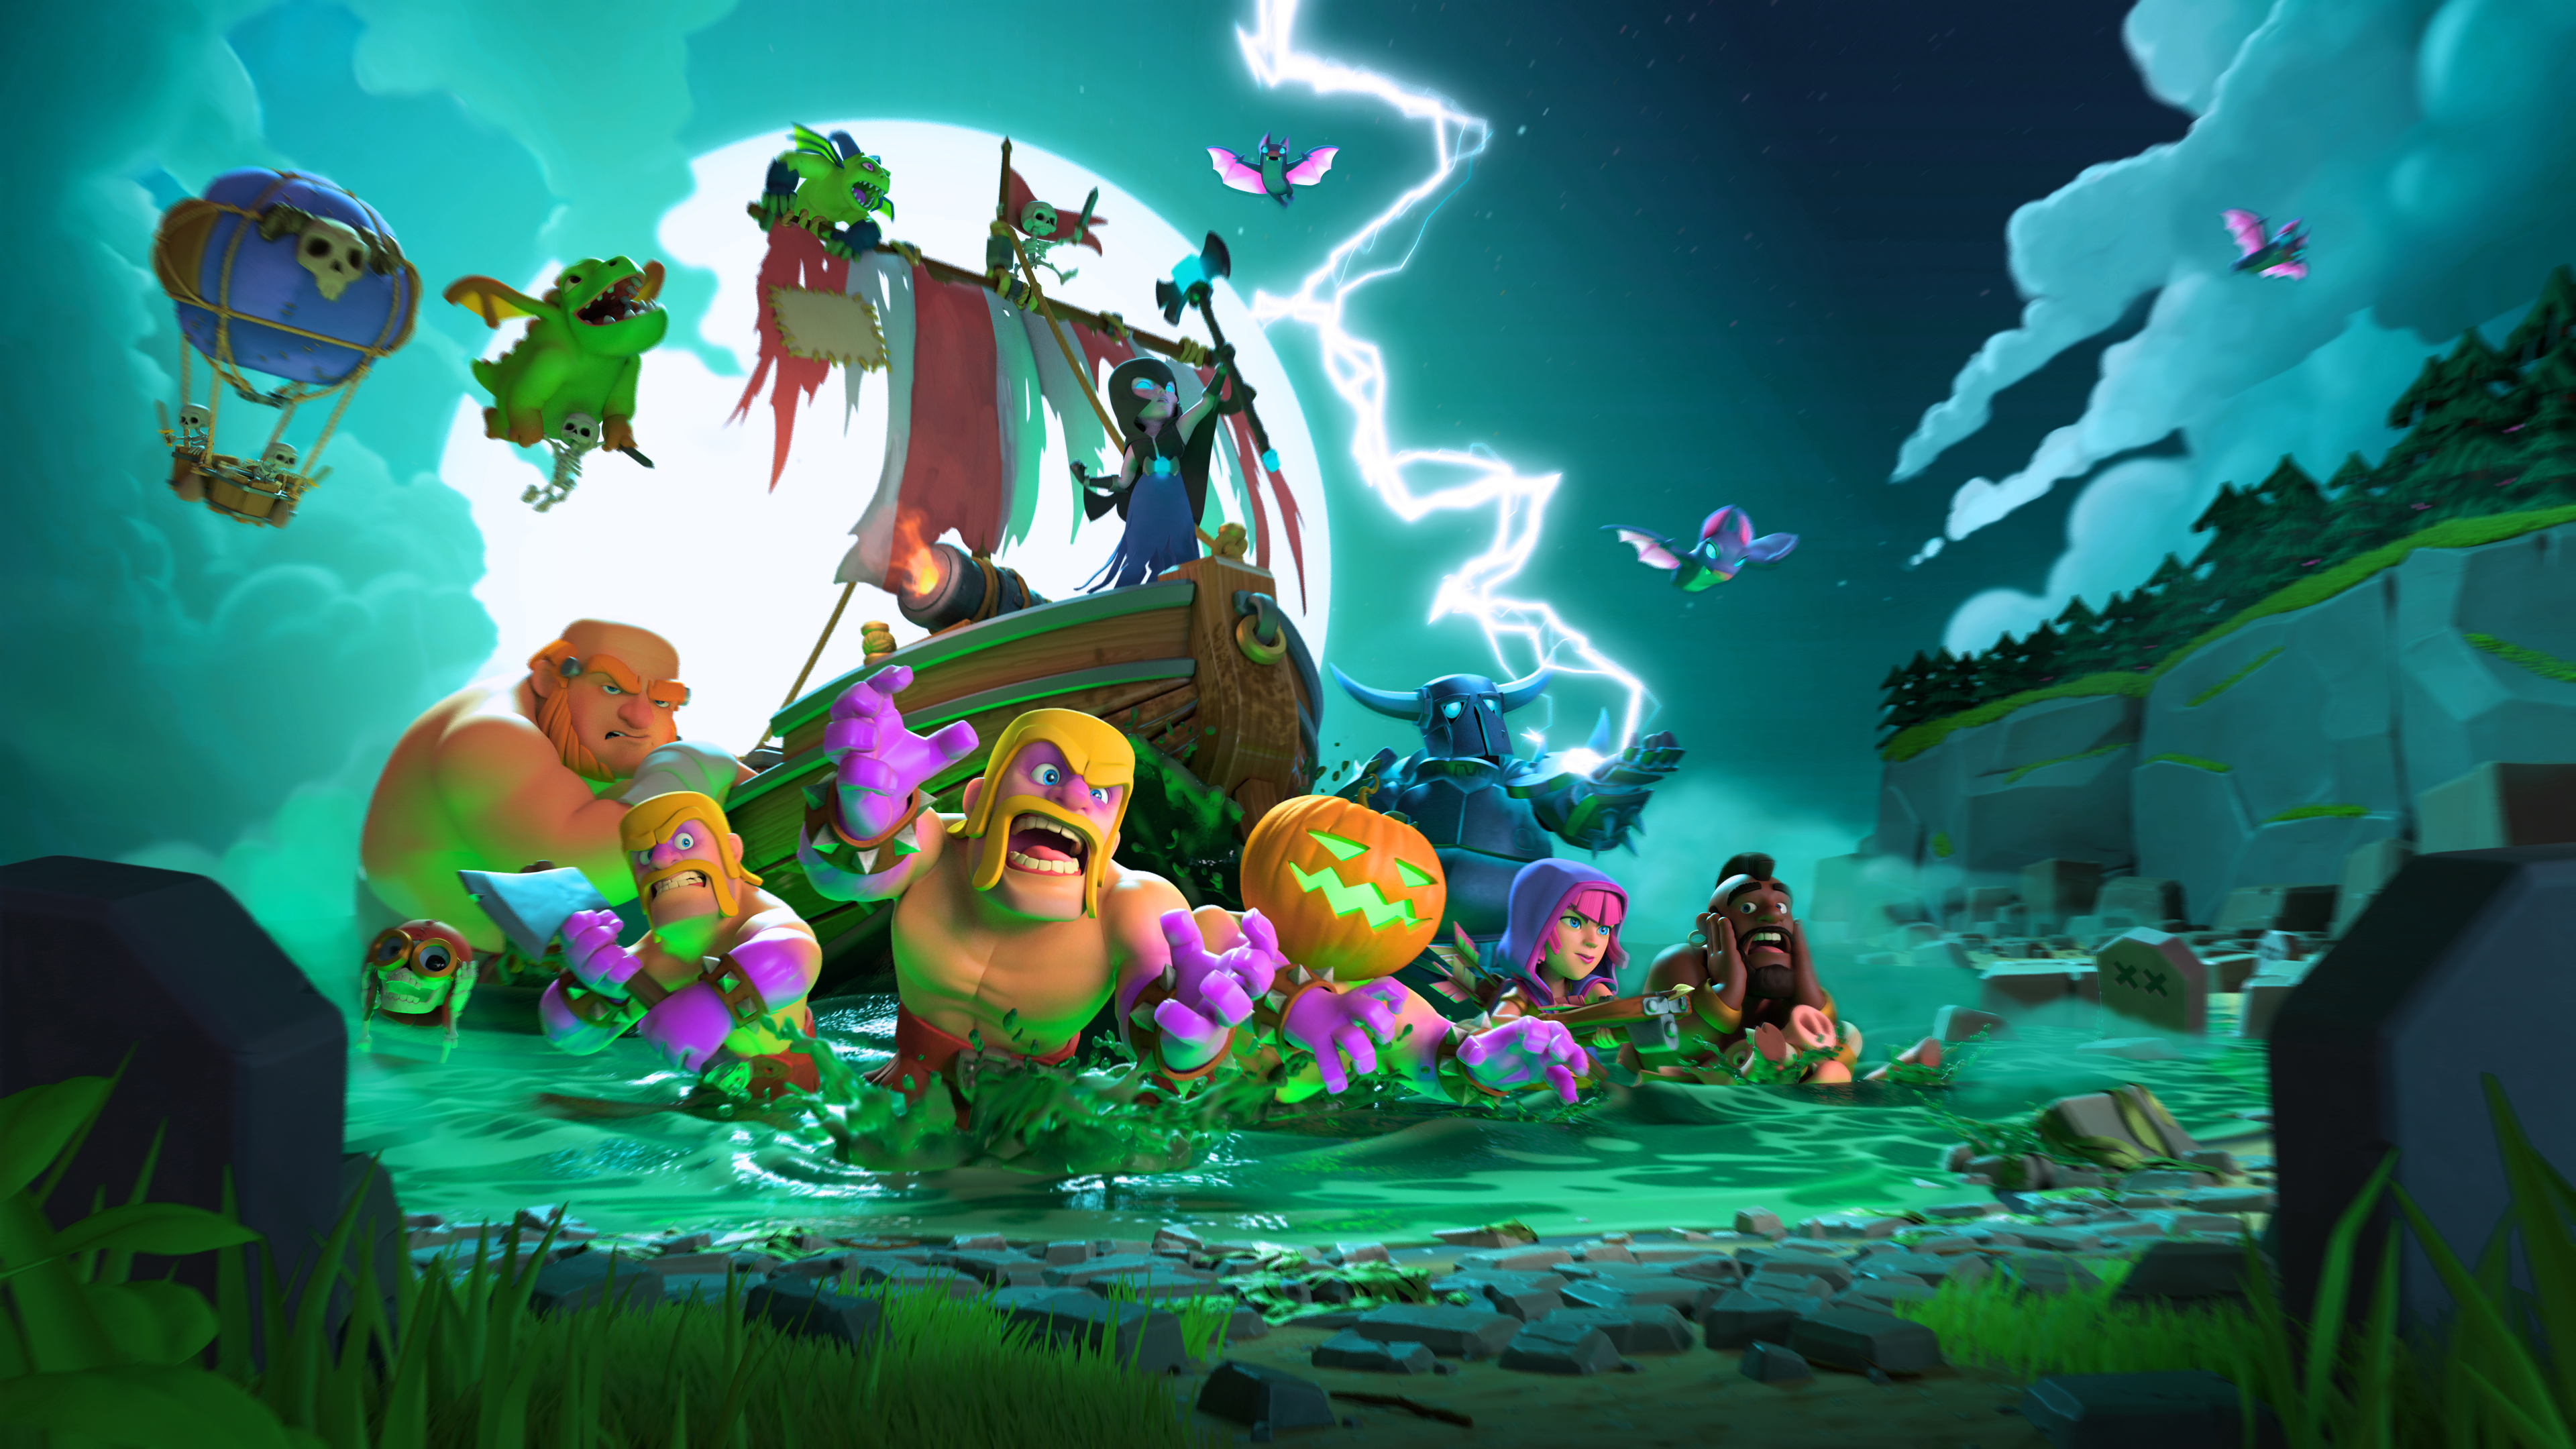 Clash Of Clans Update Halloween 2020 Halloween is Coming | Clash of Clans